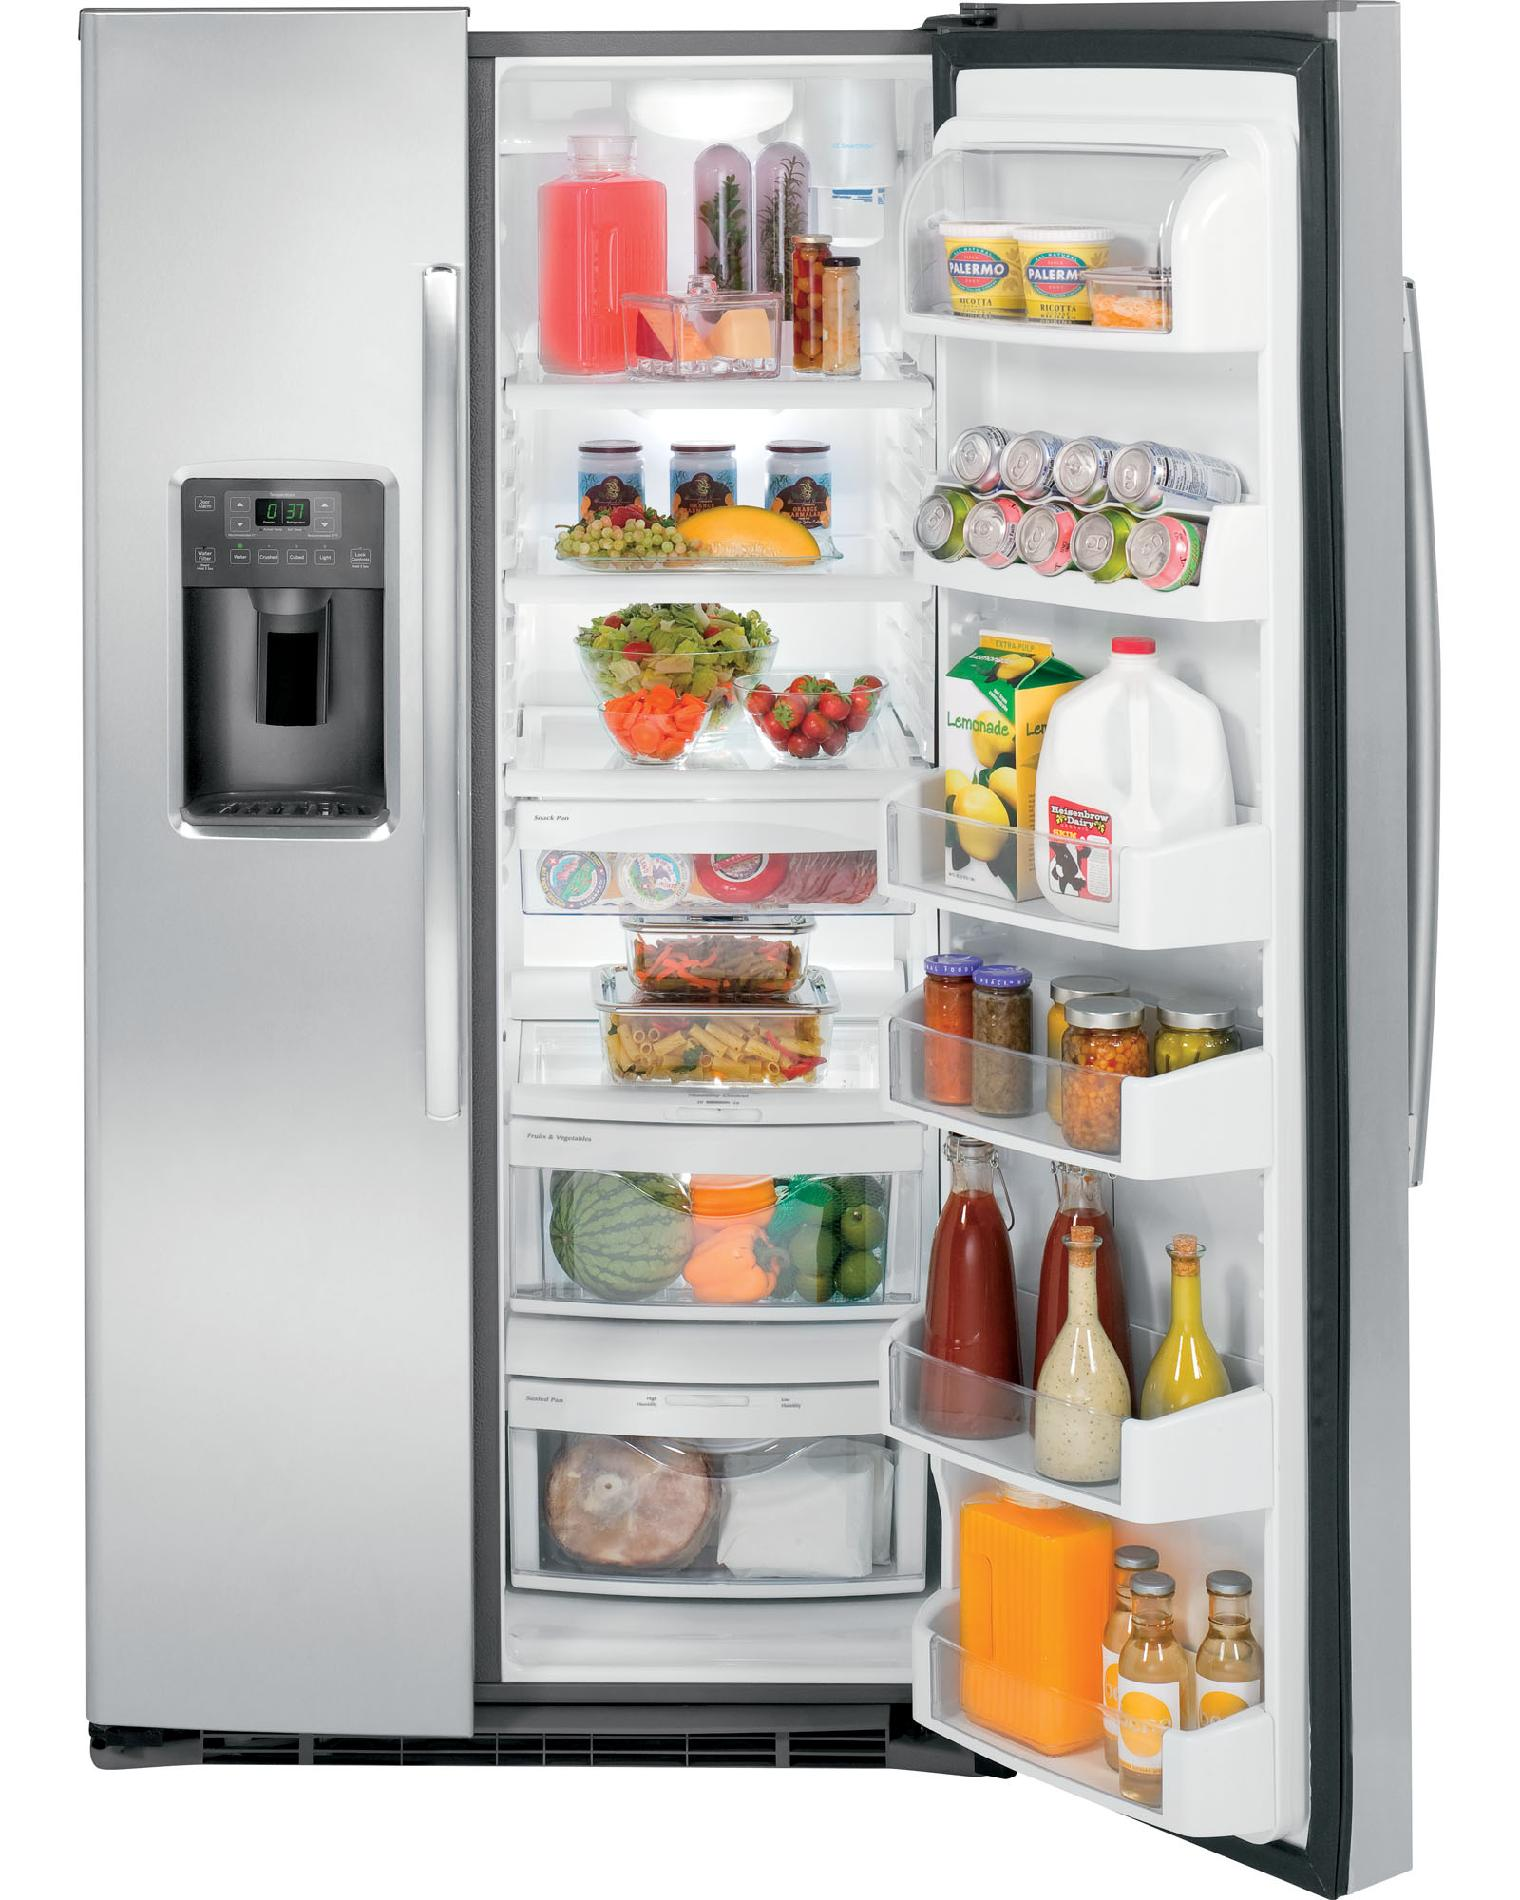 GE 25.9 cu. ft. Side-by-Side Refrigerator w/ Dispenser - Stainless Steel